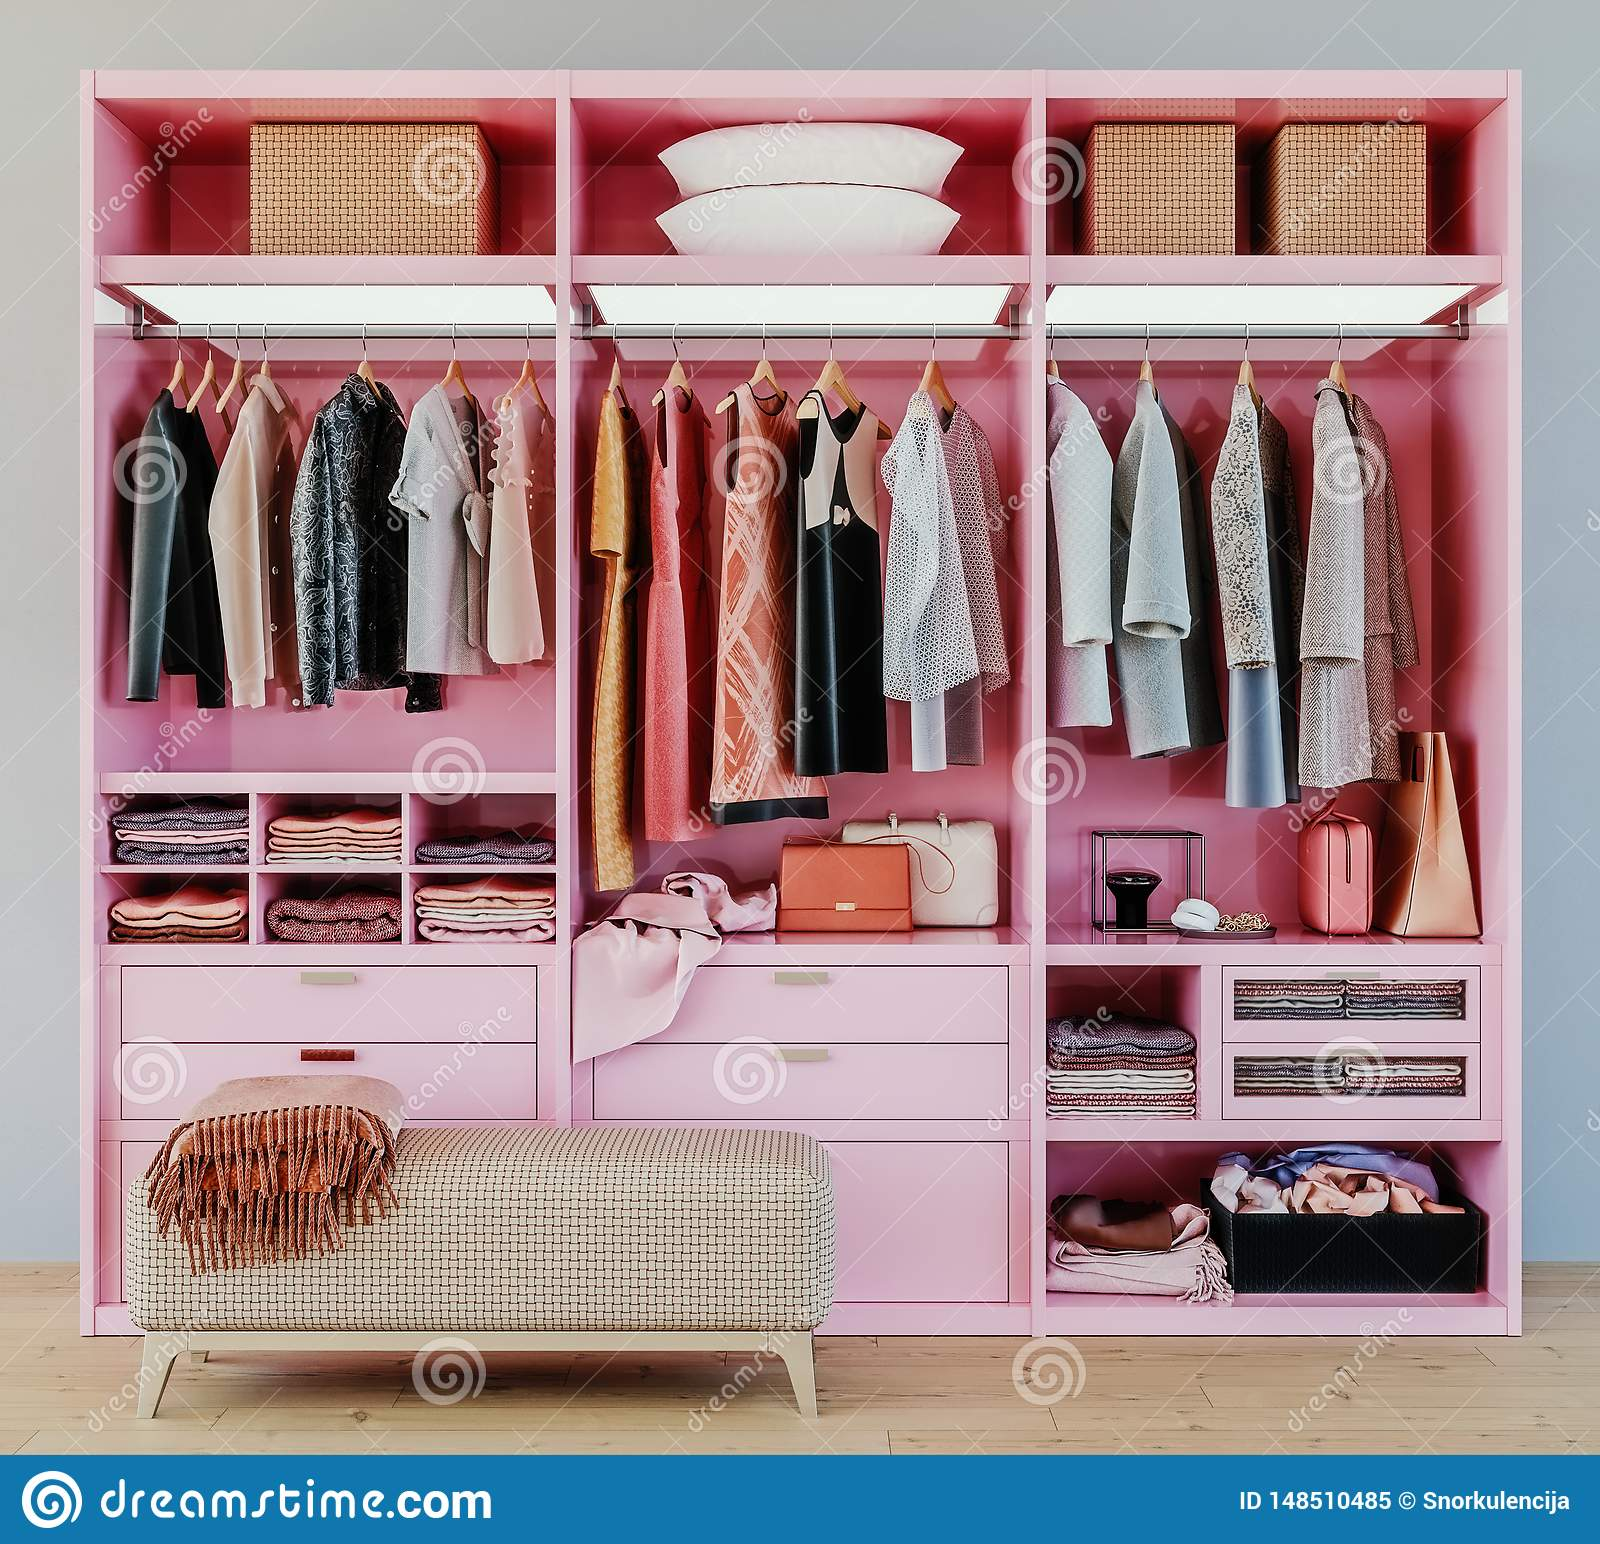 Modern Pink Wardrobe With Clothes Hanging On Rail In Walk ...